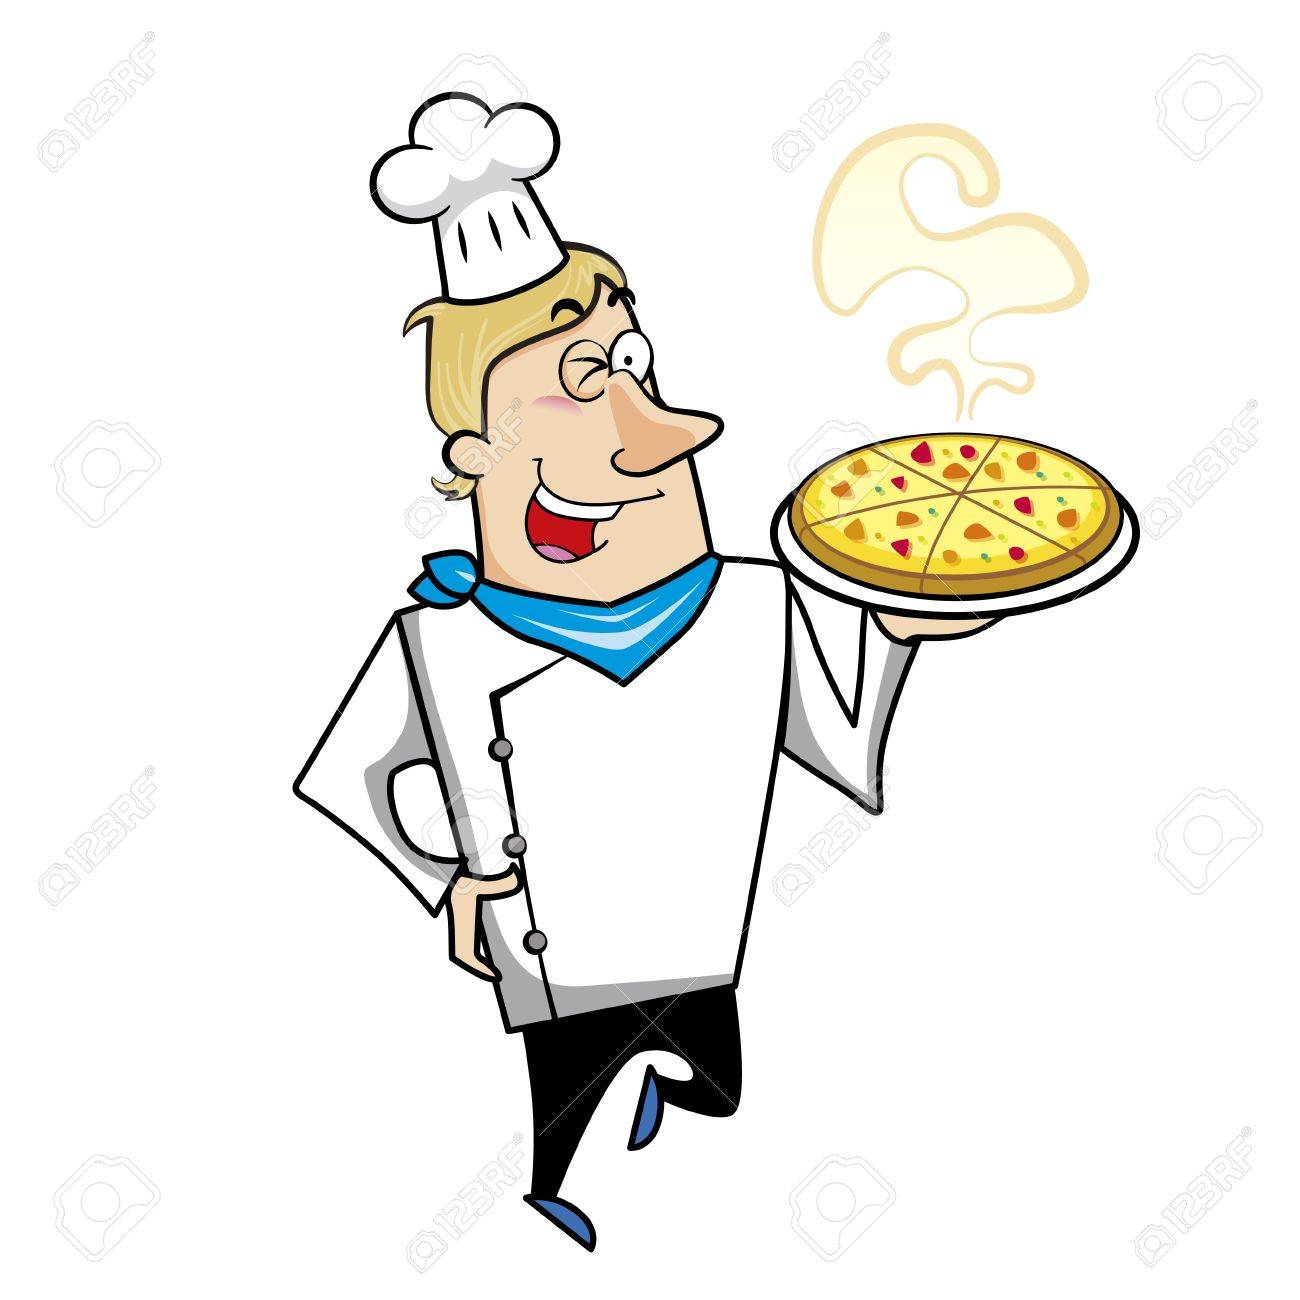 Cartoon chef with pizza vector illustration. Stock Vector - 18261497